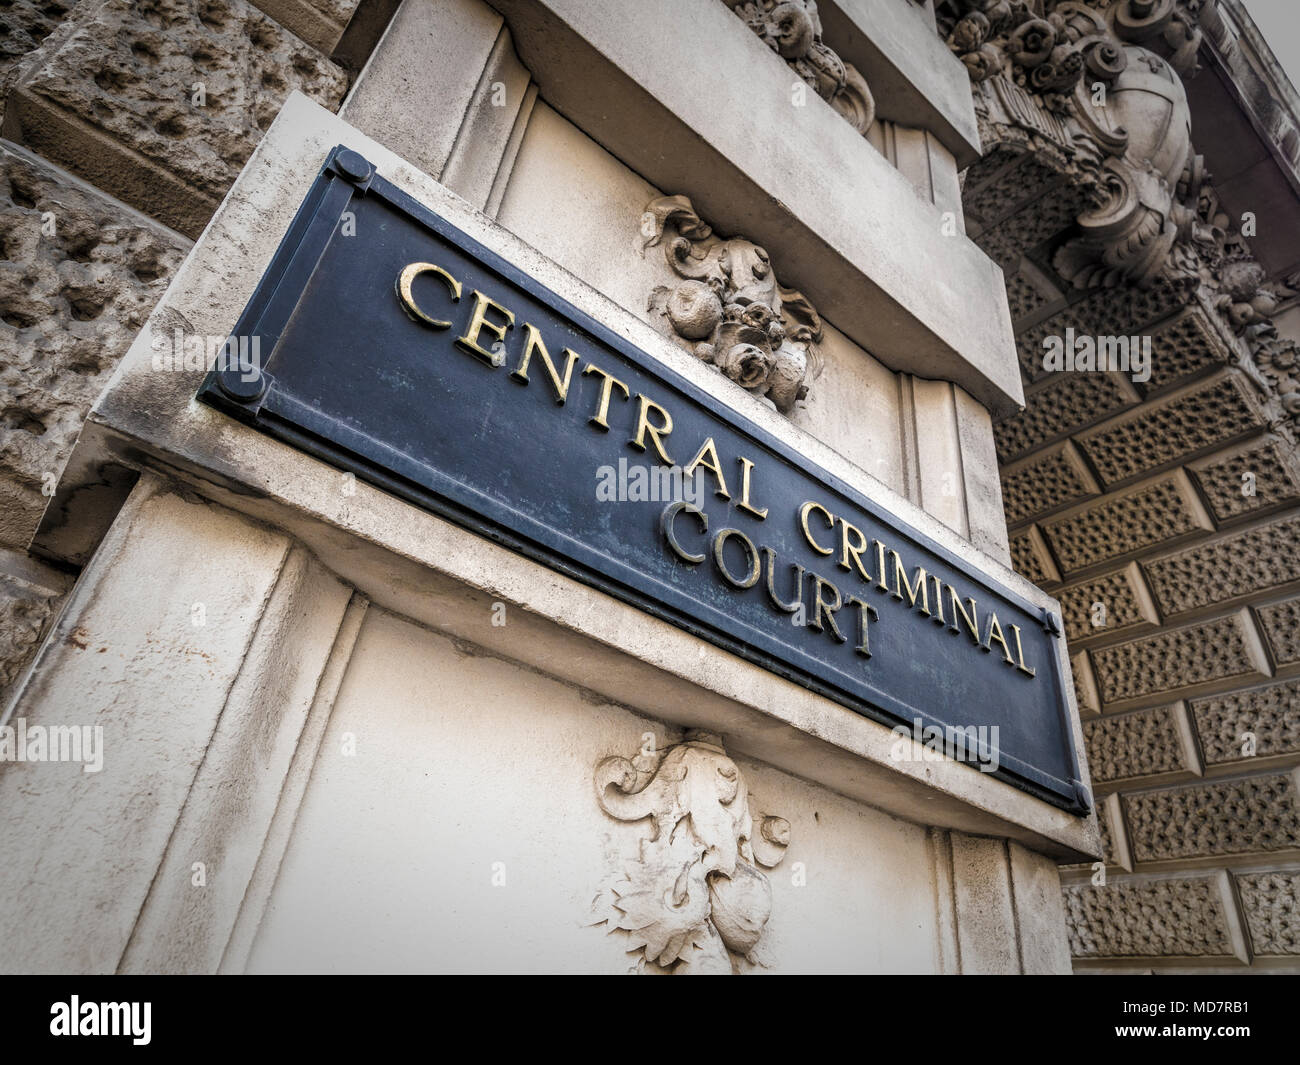 Central Criminal Court sign on exterior of Old Bailey, London, UK. - Stock Image